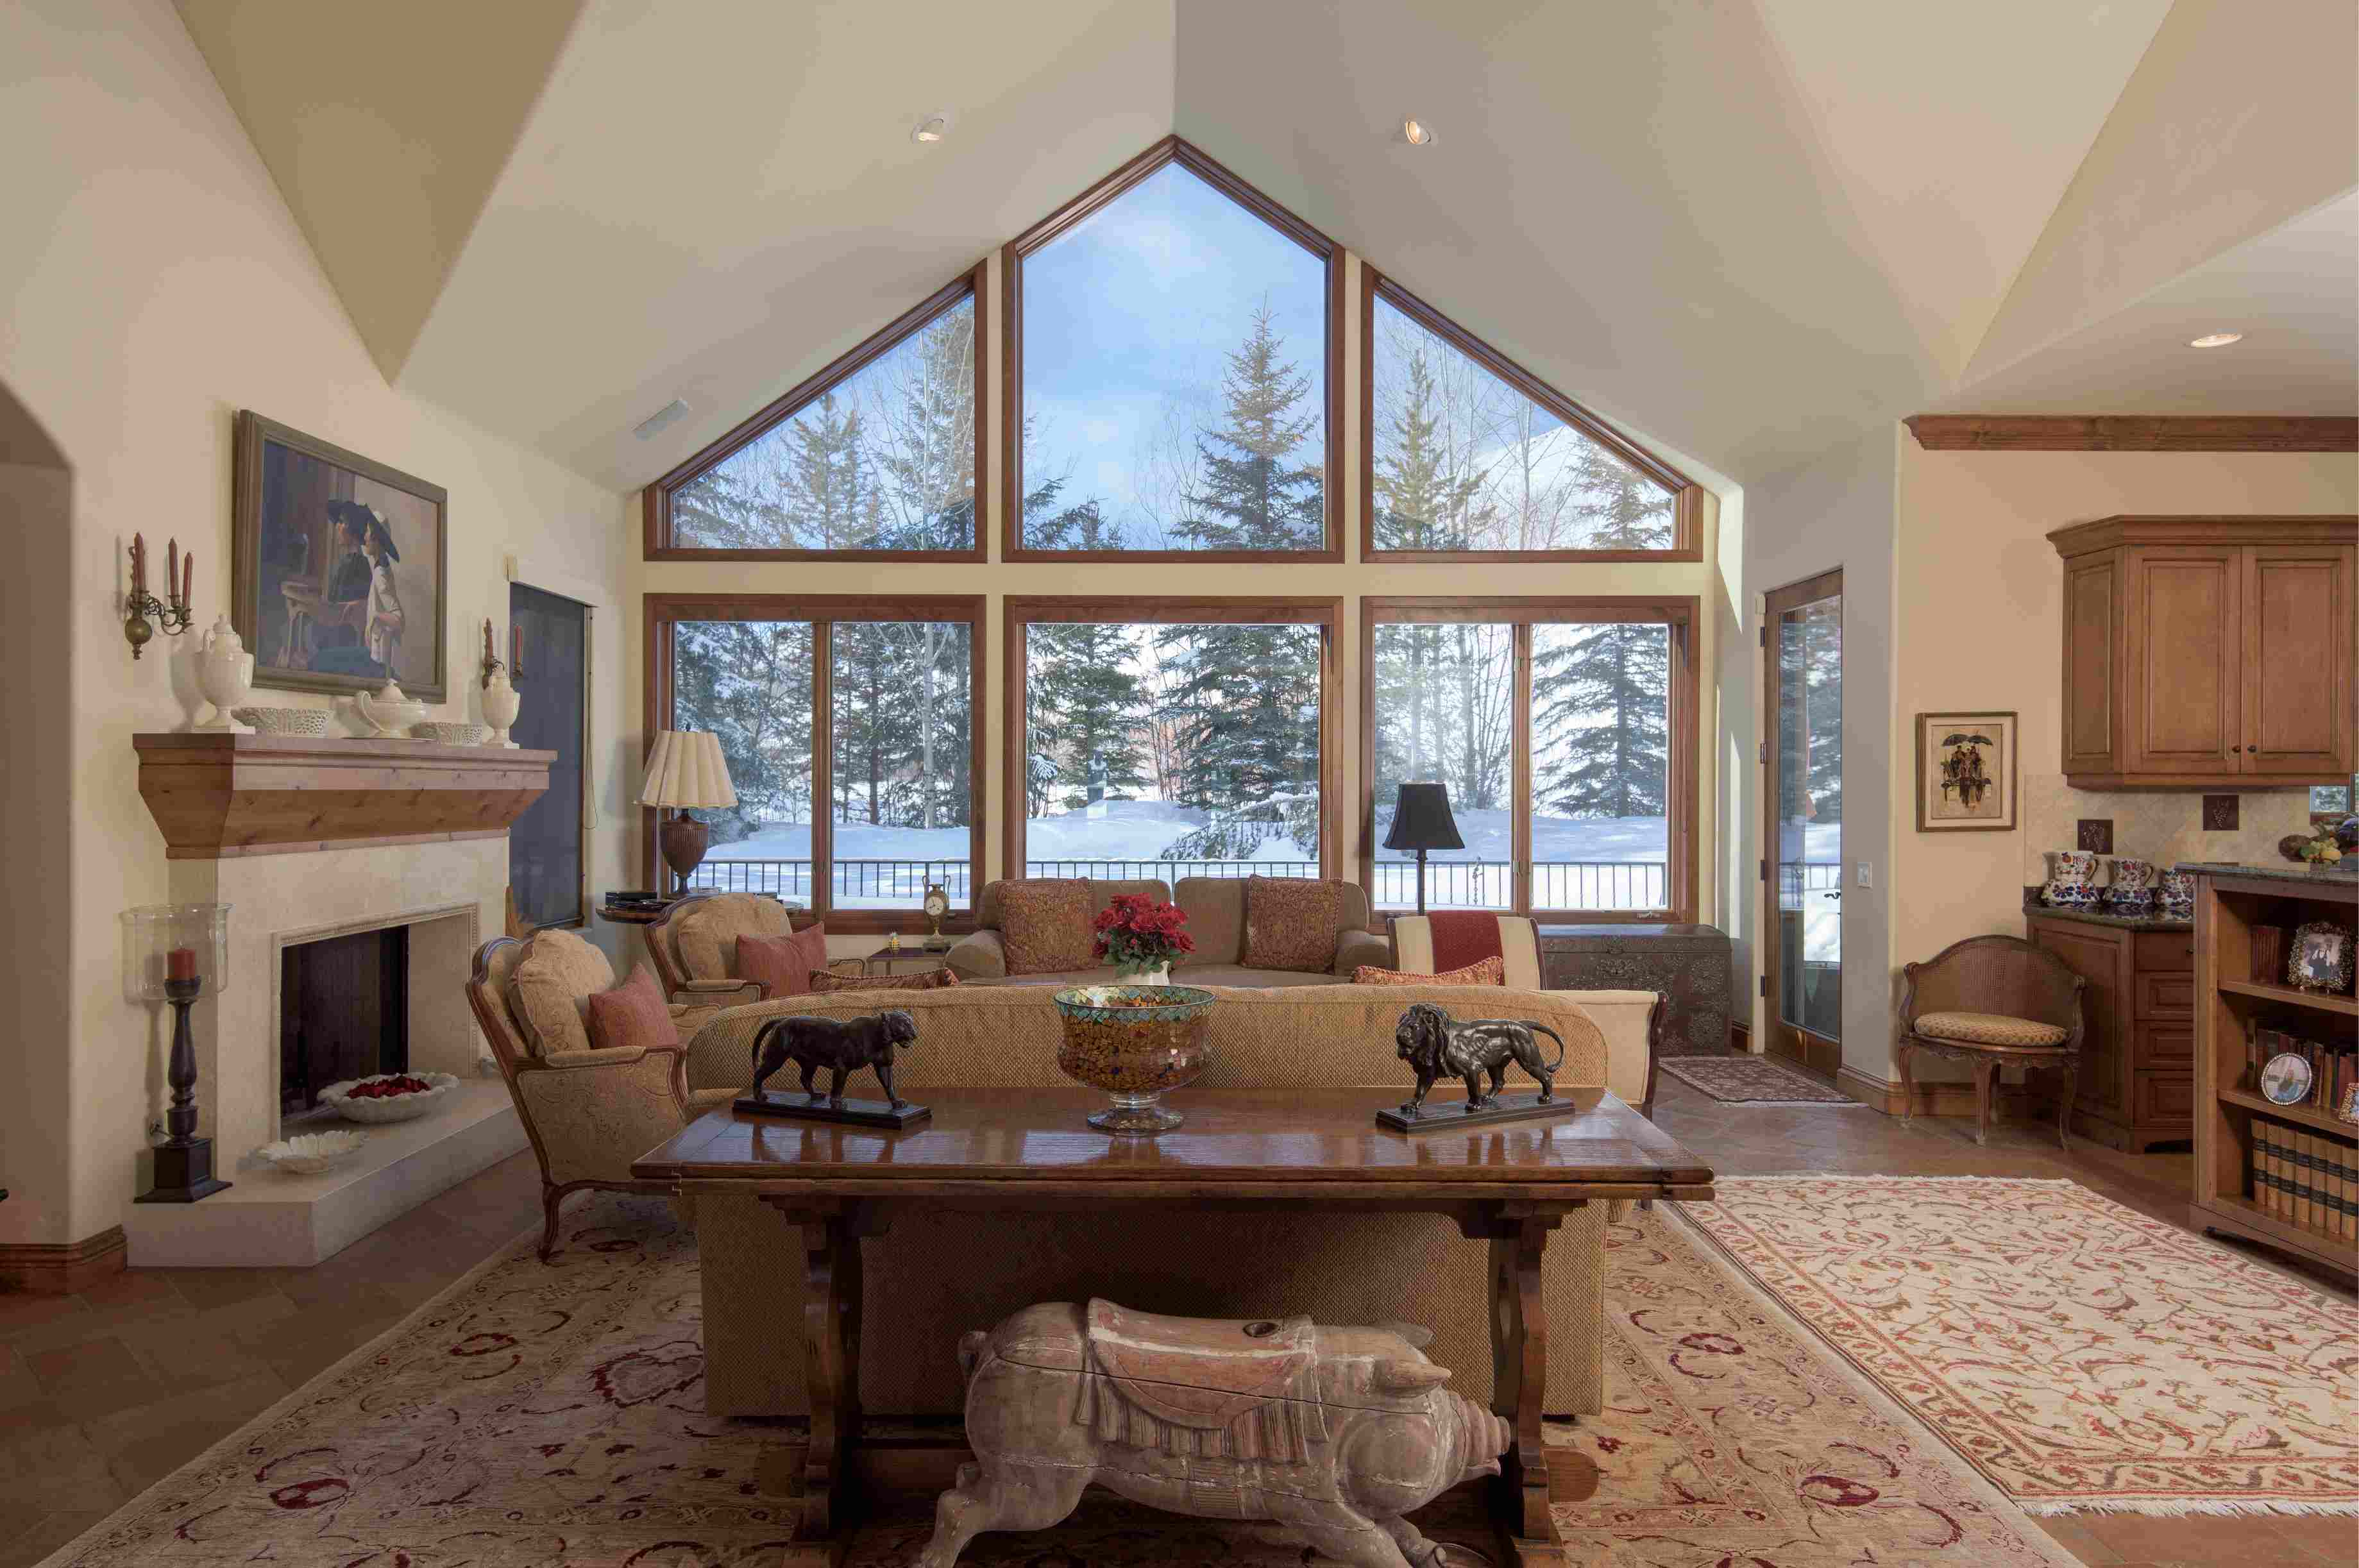 Single Family Home for Sale at Rarely Available Estate Caliber Home 1100 W Canyon Run Blvd. Warm Springs, Ketchum, Idaho, 83340 United States